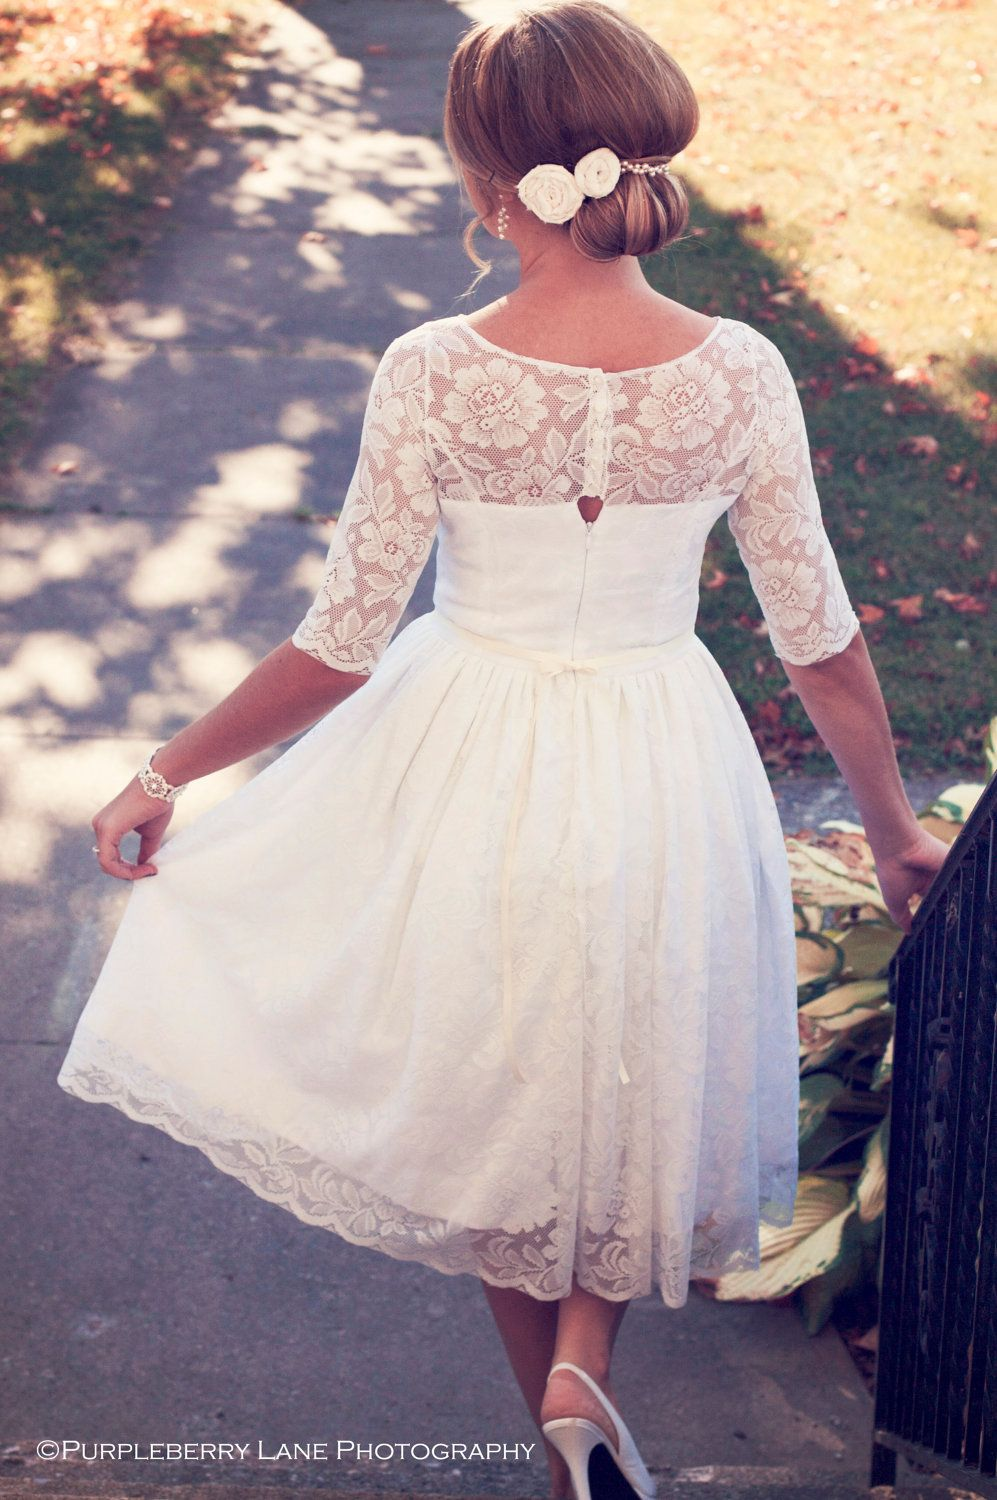 Design your own wedding dress near me  Tea Length Illusion Lace Wedding Gown  Or Letus Custom Design Your